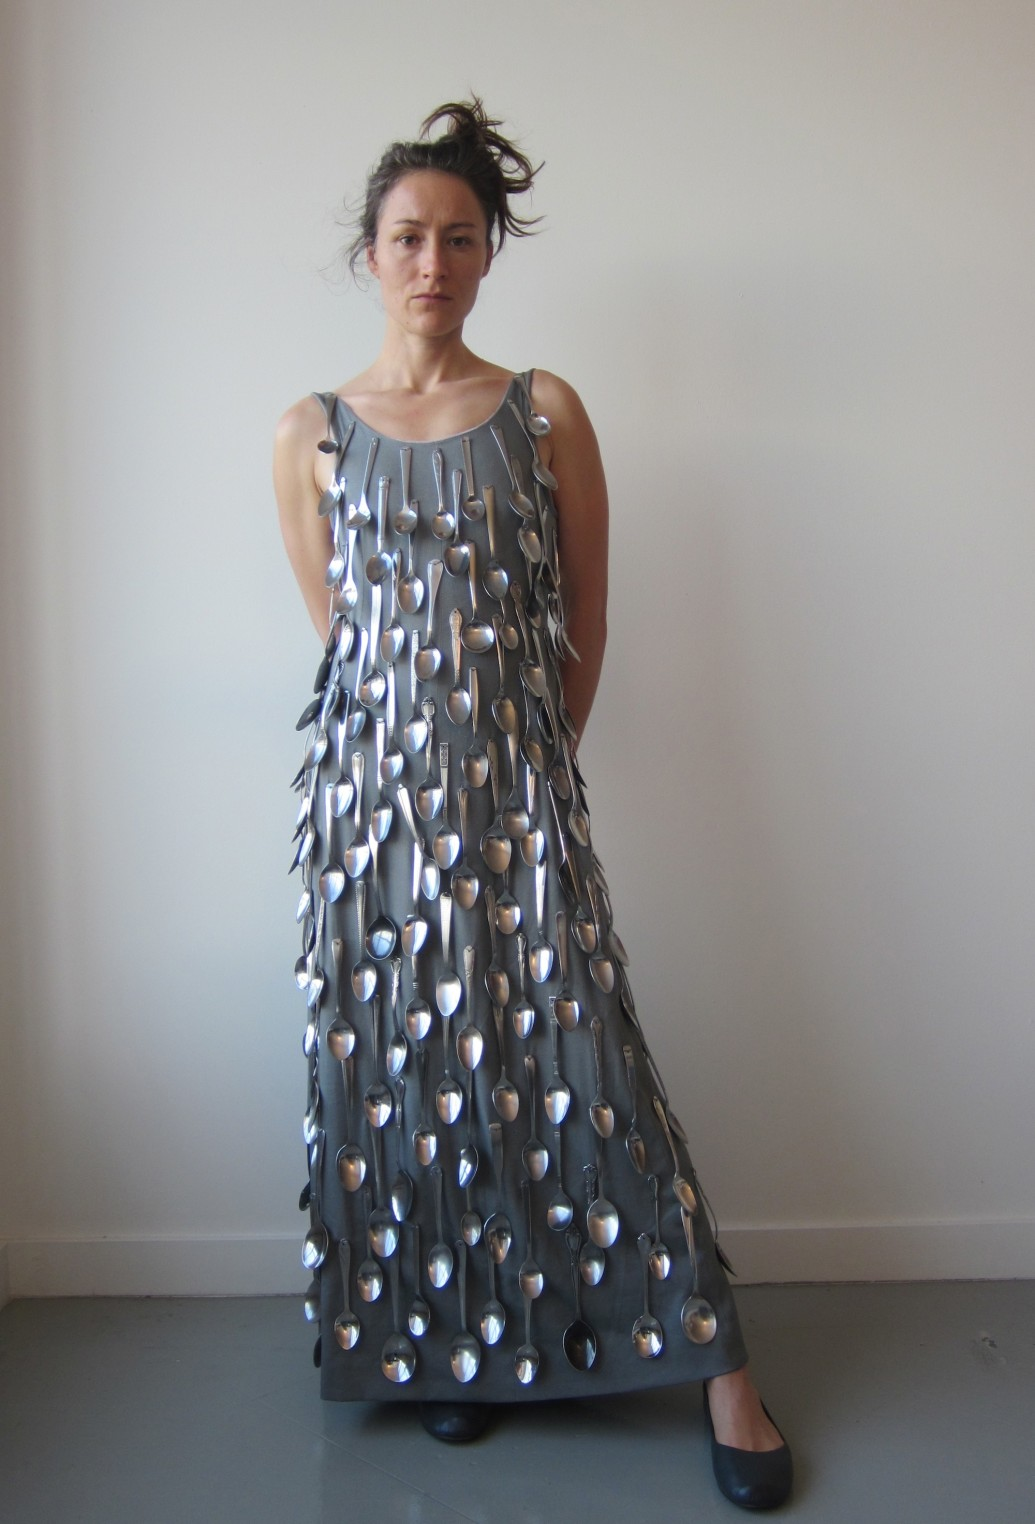 Spoon Dress, 2012